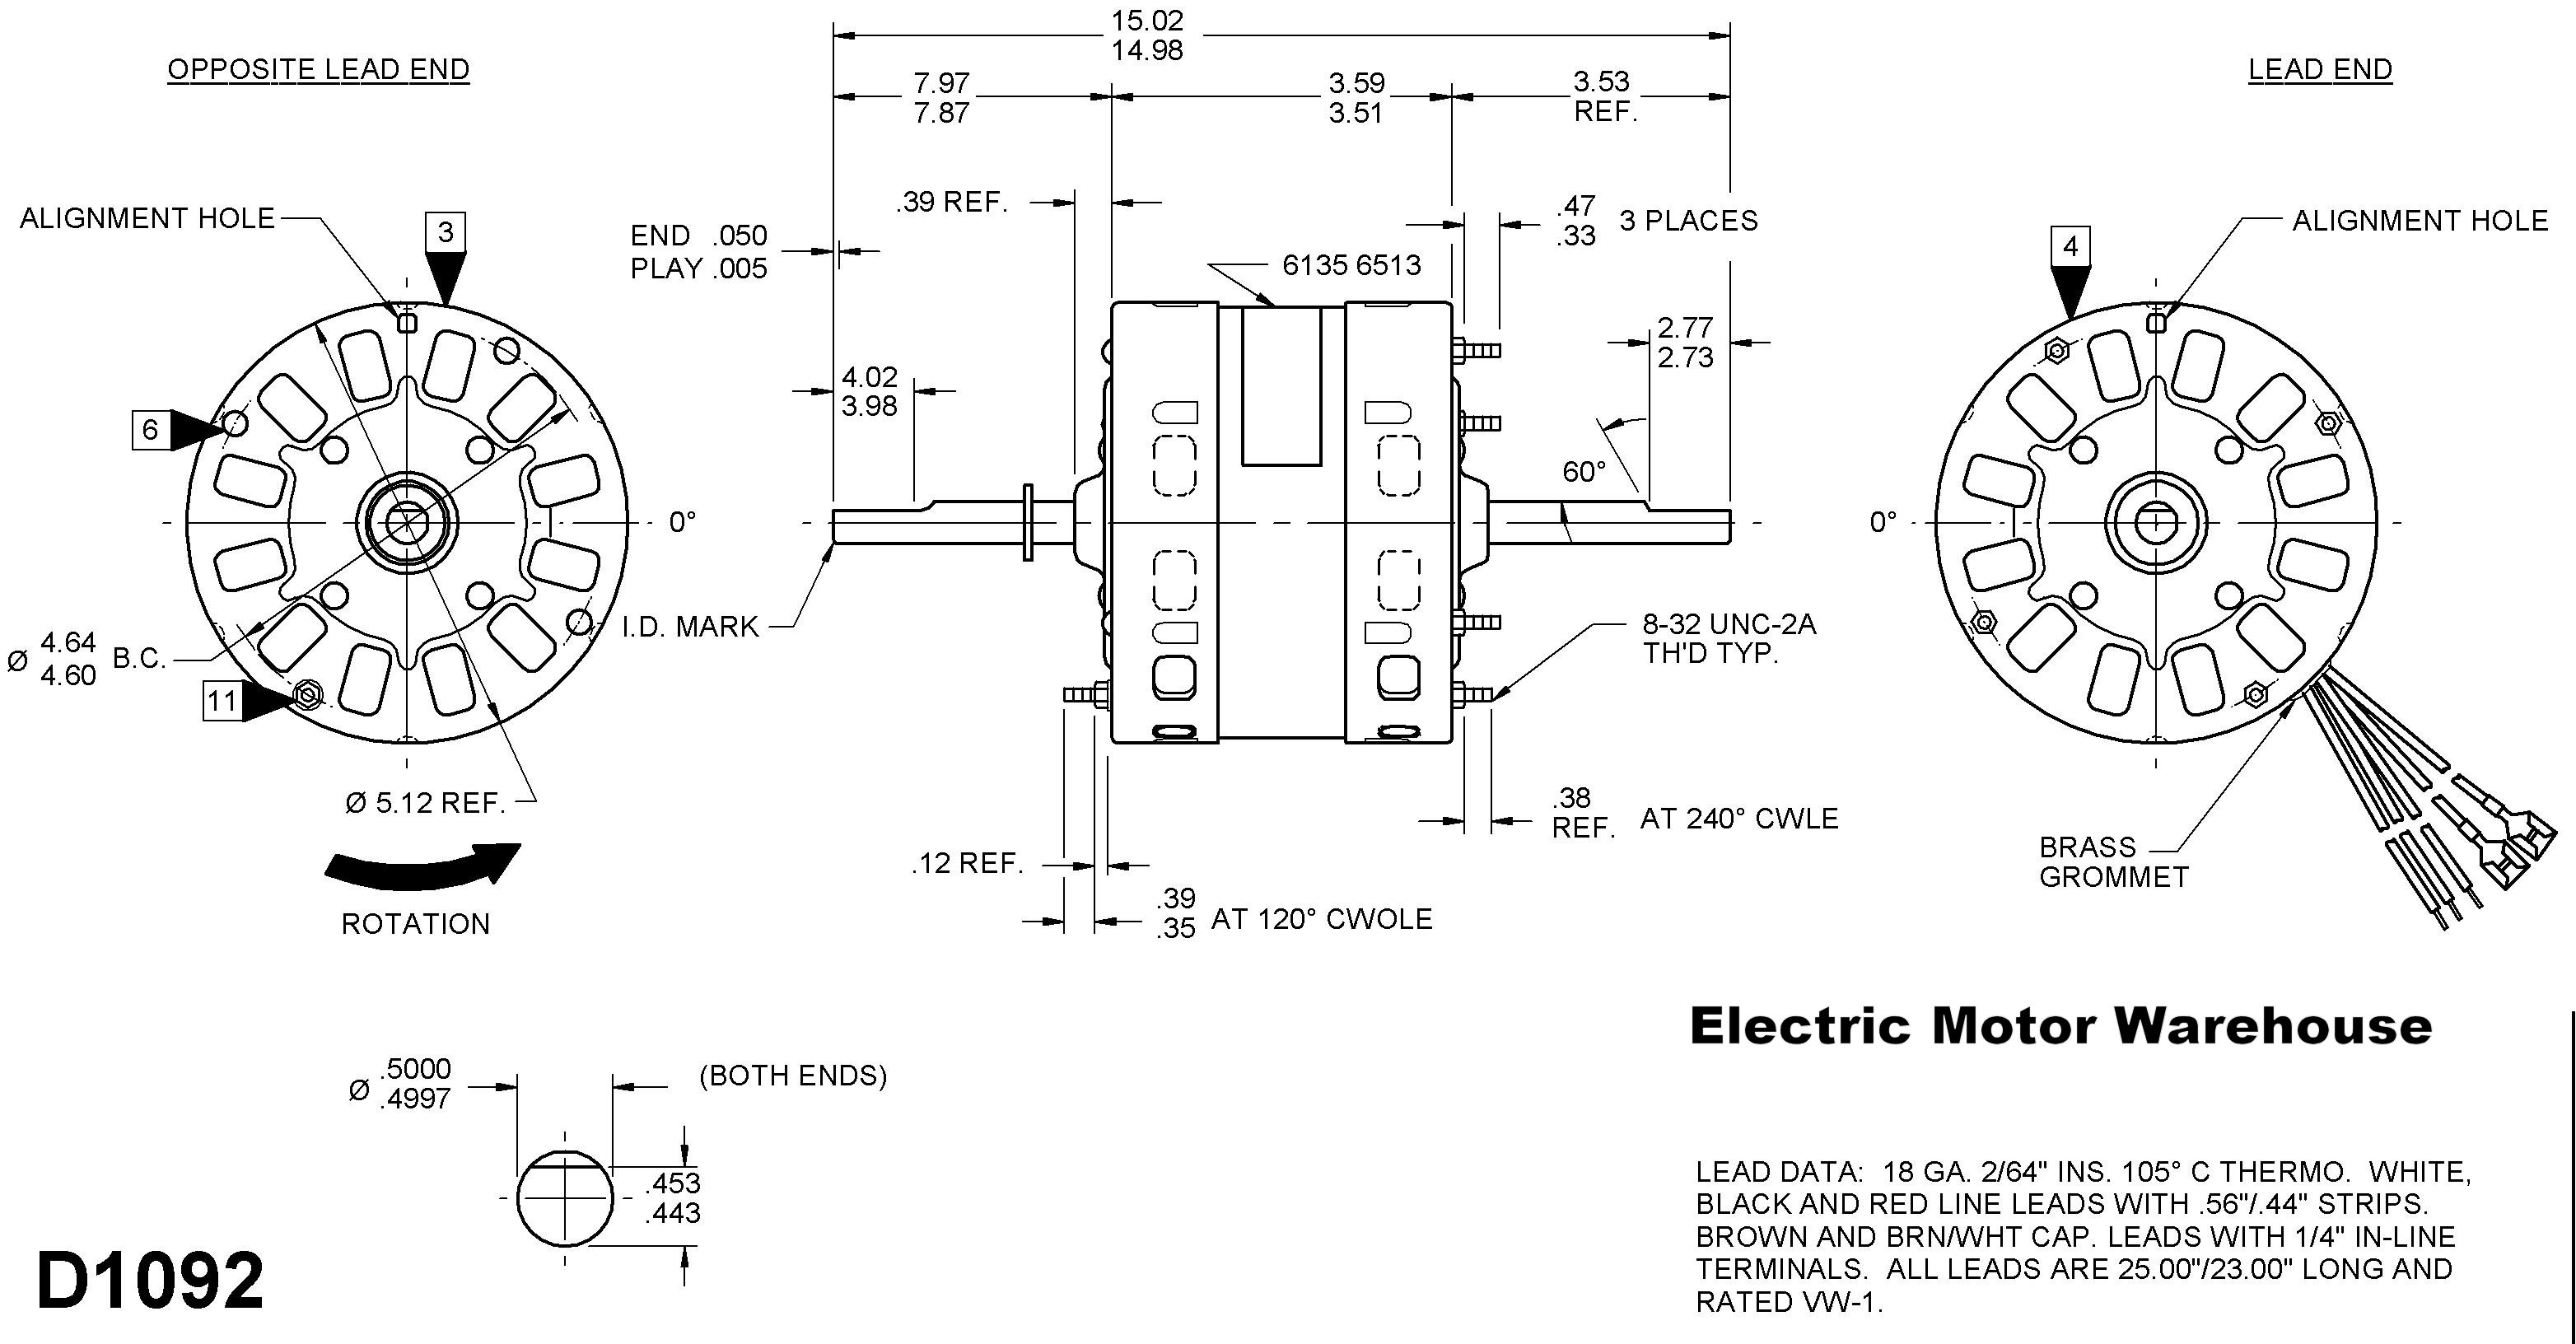 century 1 2 hp auger motor wiring diagram 41 wiring diagram images ge electric motor wiring diagram d1092_drawing 1 3 hp 115v 1625 rpm 2 speed rv air conditioner motor (7184 0156 century 1 2 hp auger motor wiring diagram